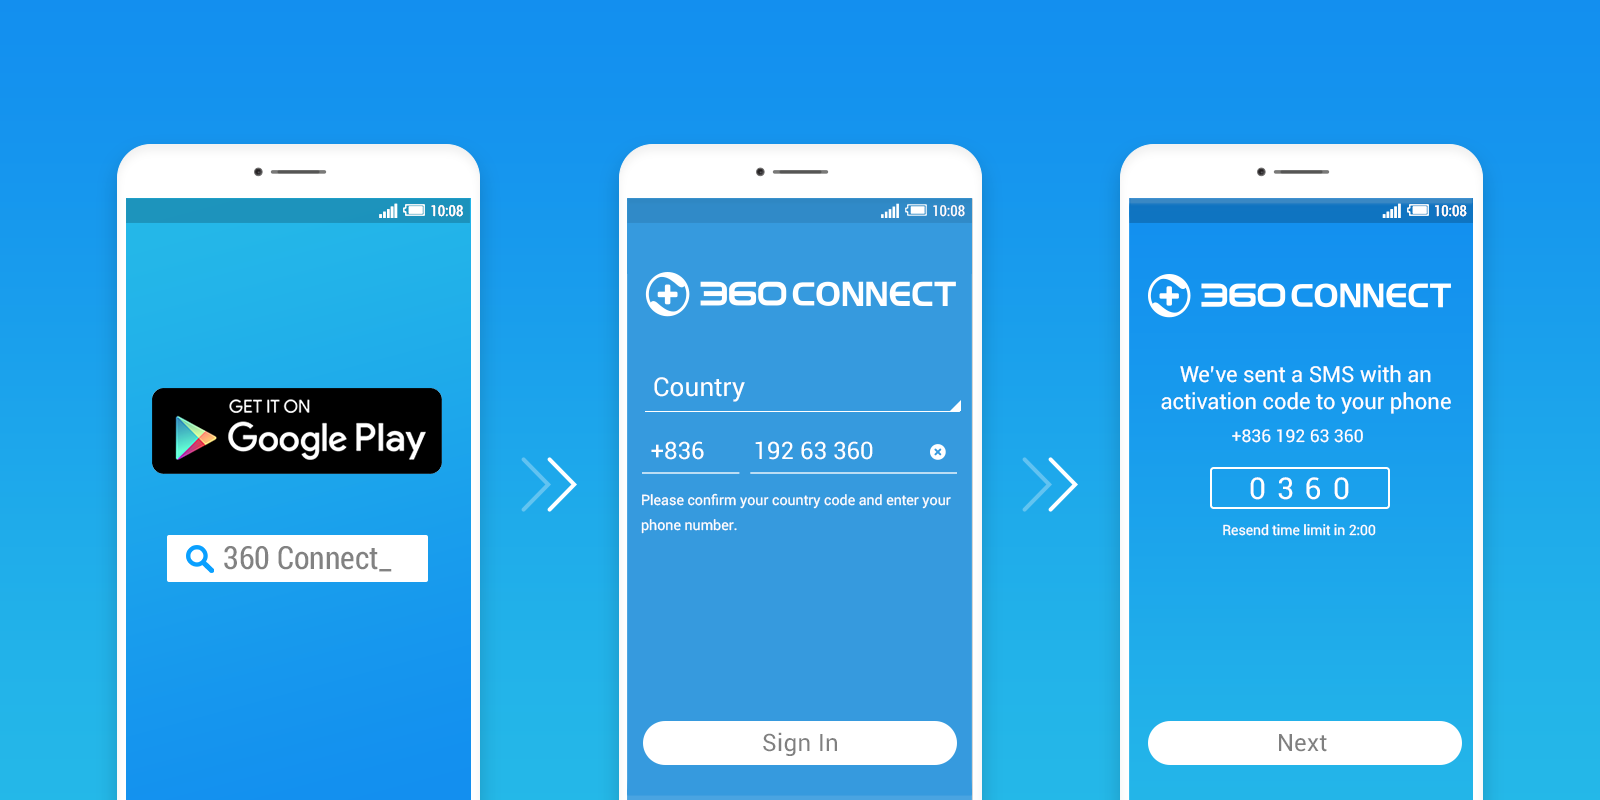 Register360 Connect app